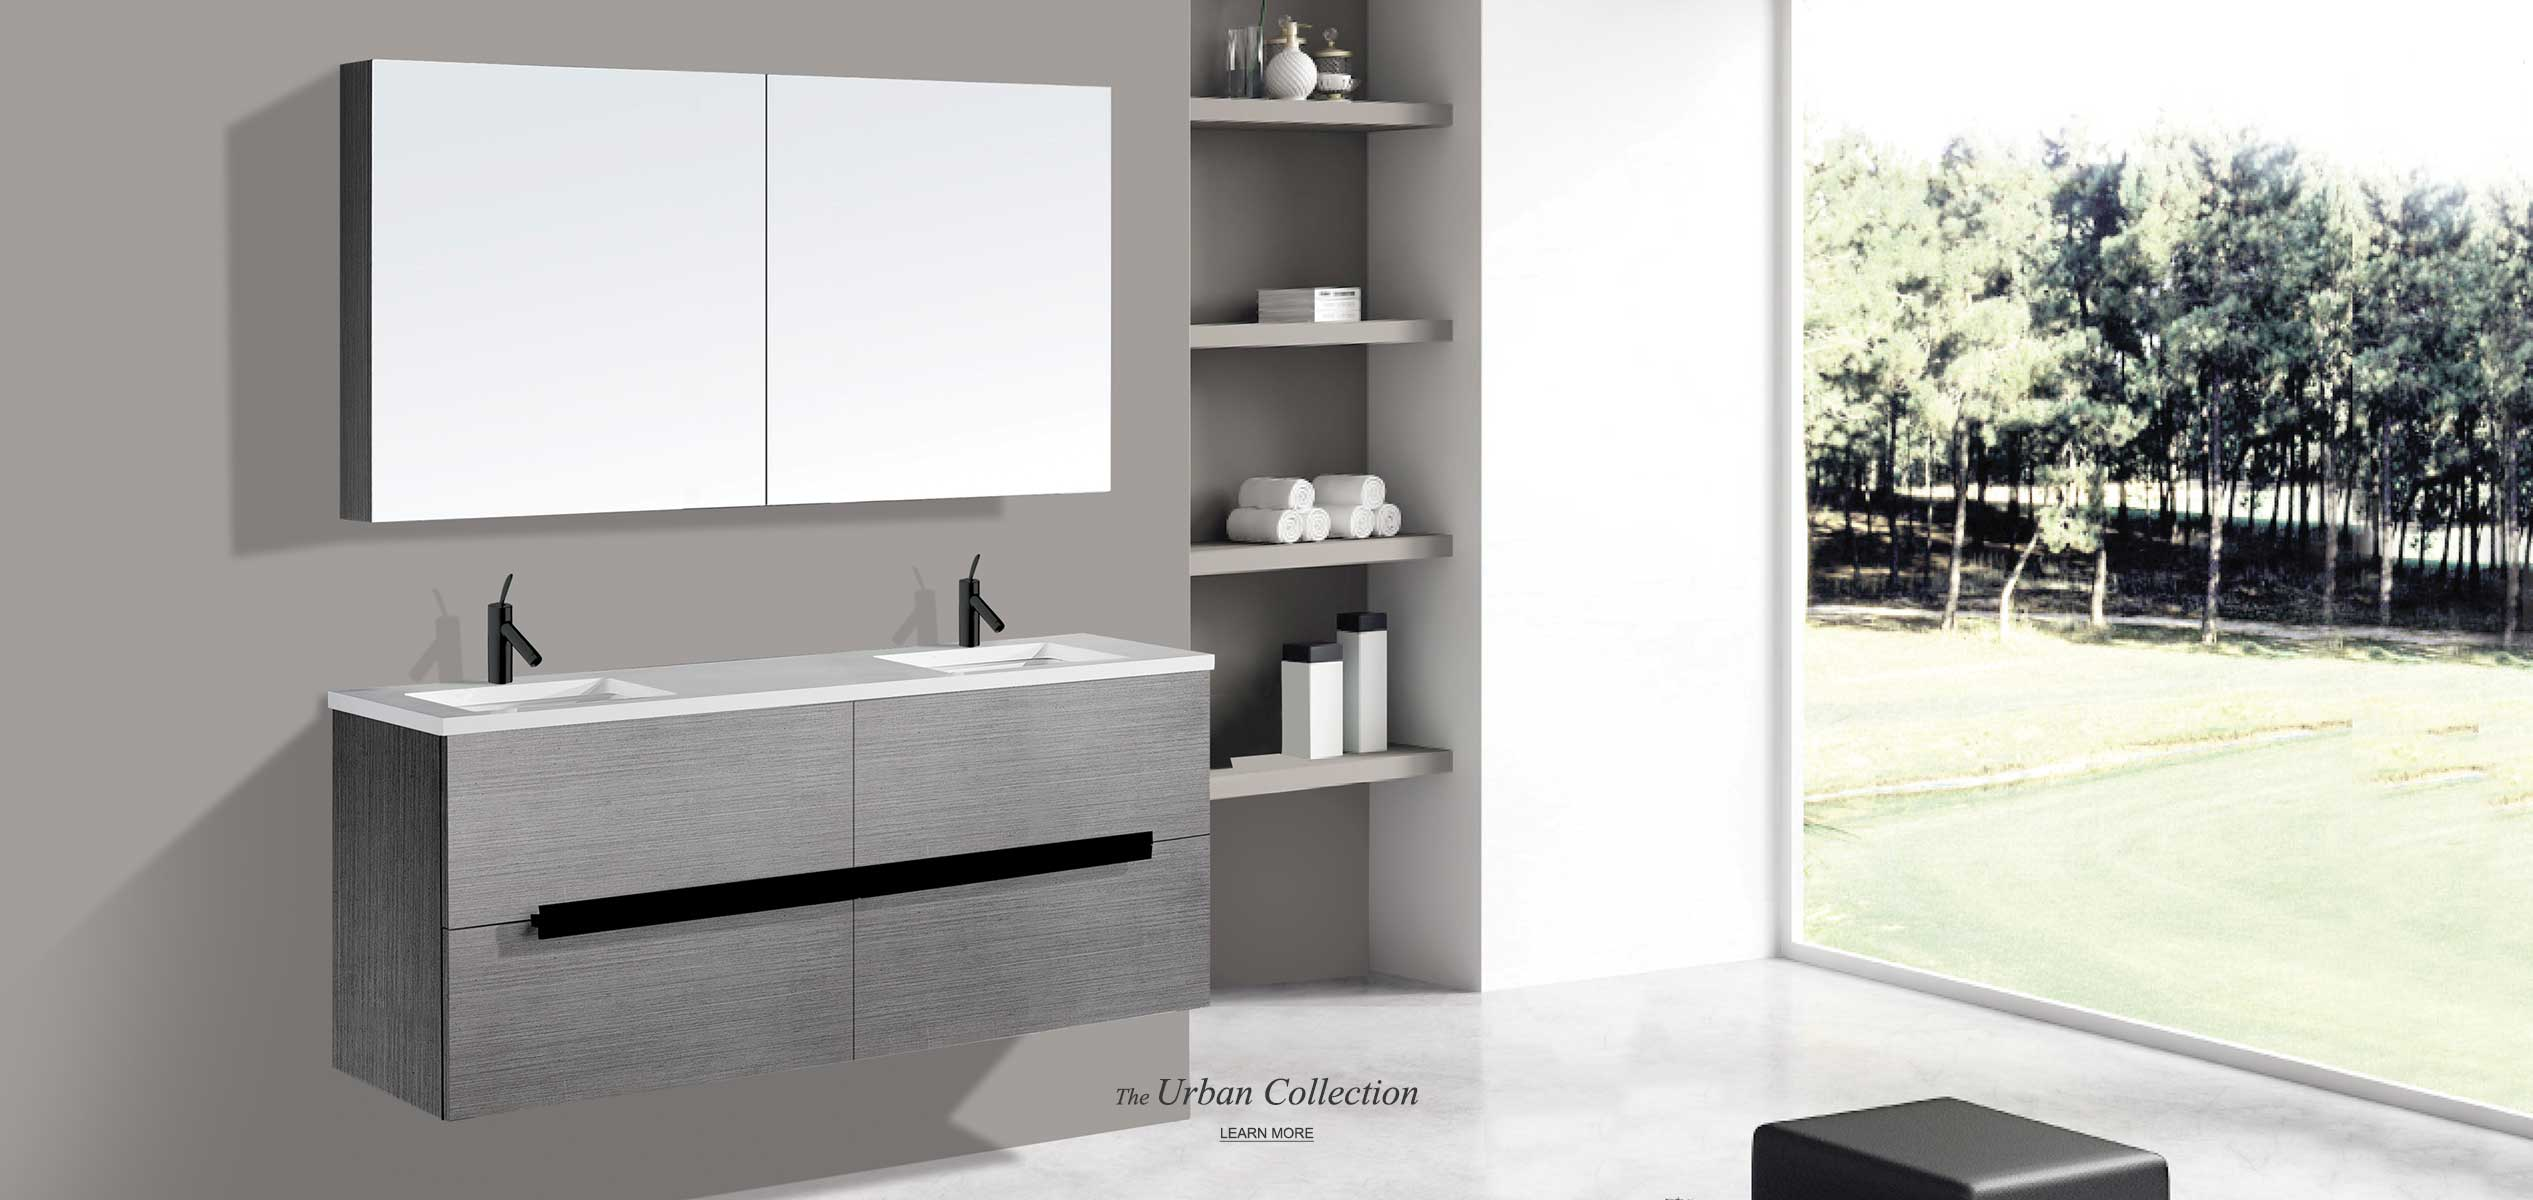 Urban 60 inch double bowl vanity in ash grey finish with medicine cabinet